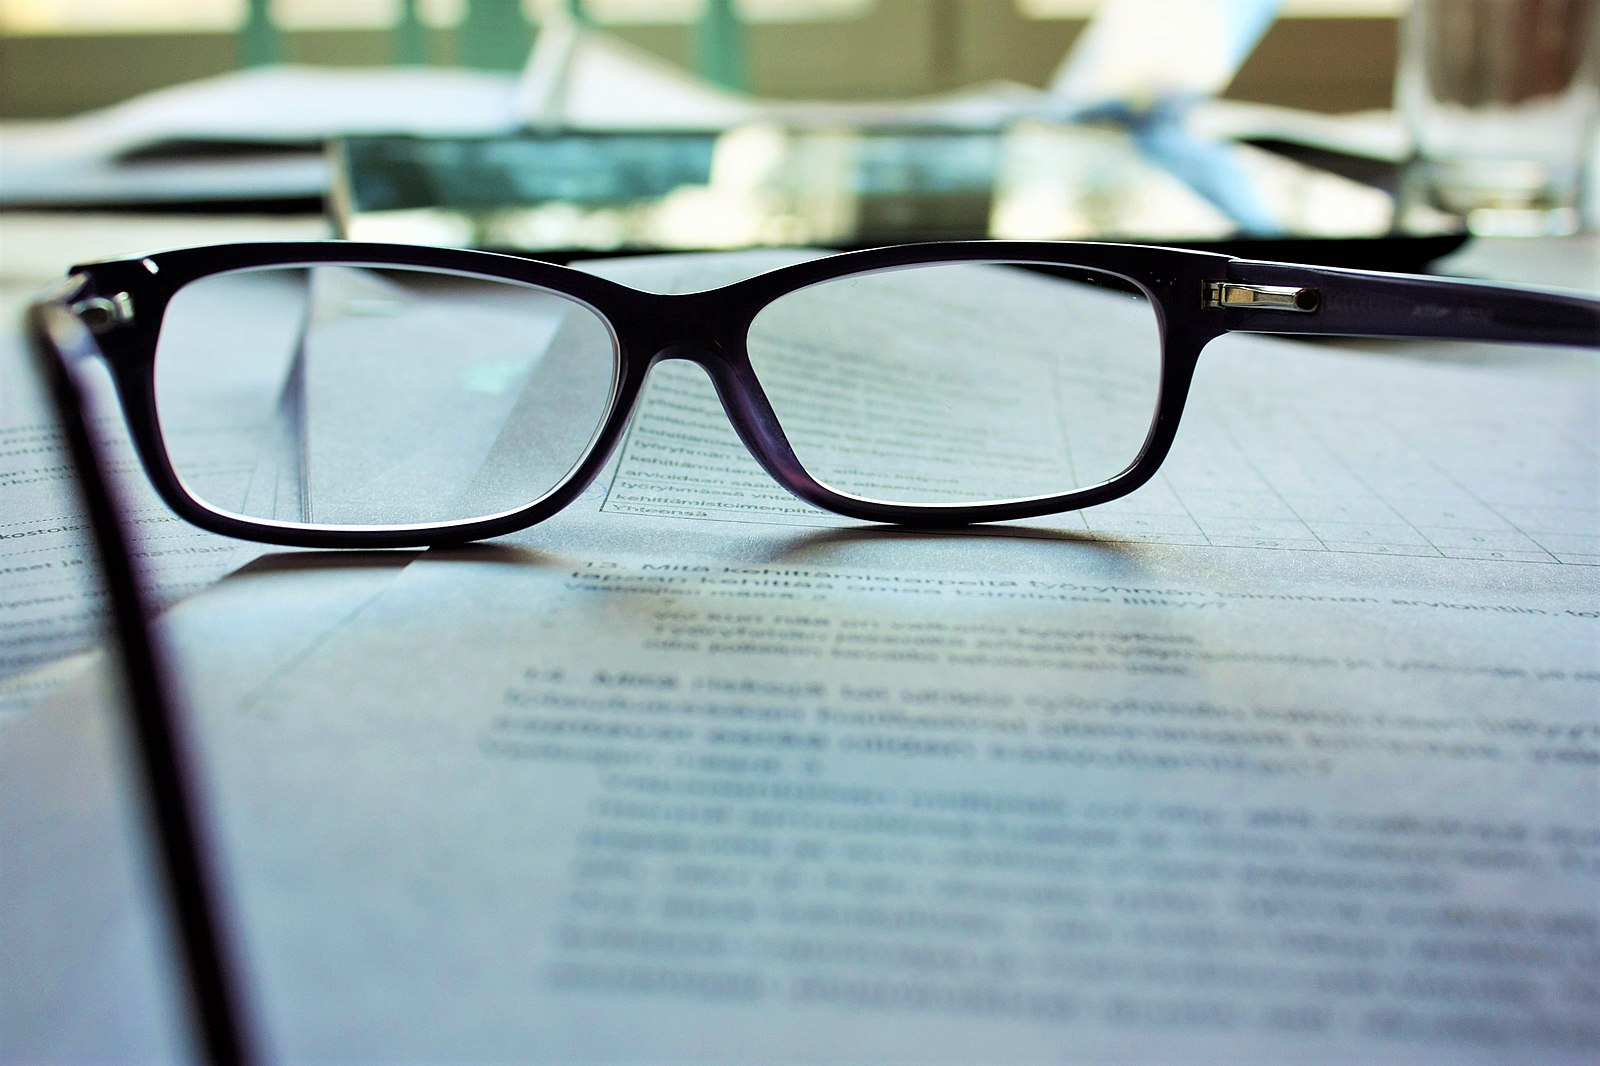 Difference Between Bifocal and Reading Glasses